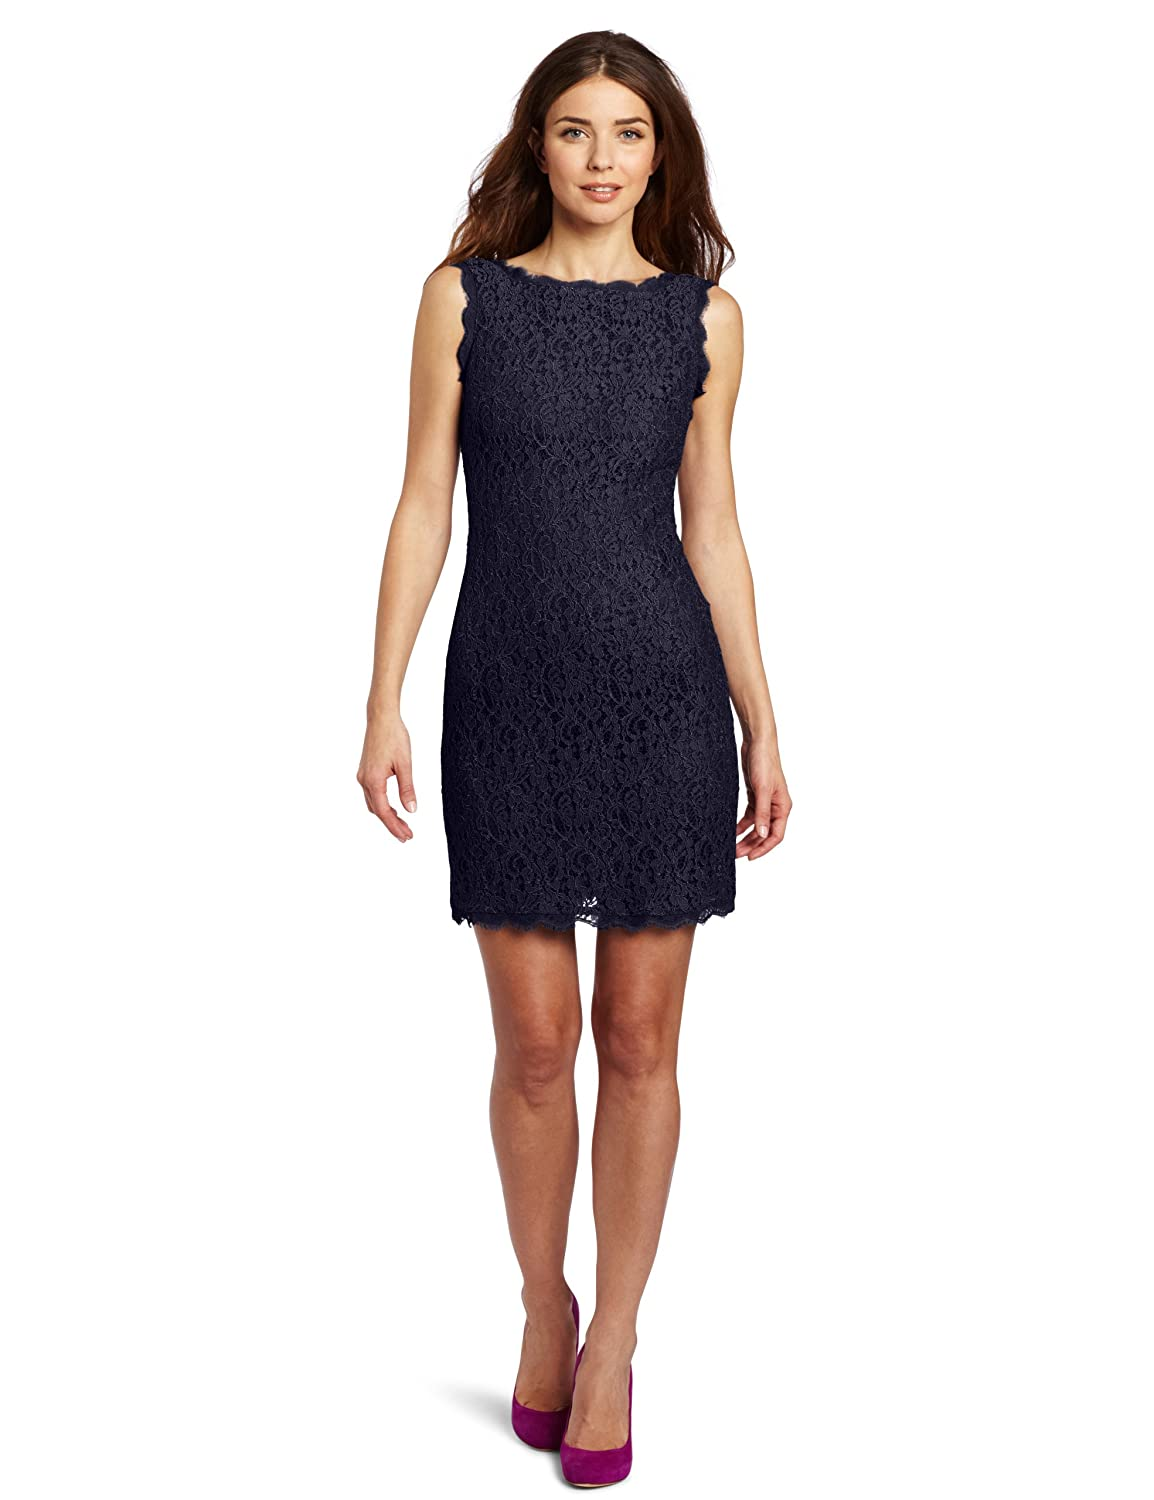 Adrianna Papell Women's Sleeveless Lace Dress 041871750